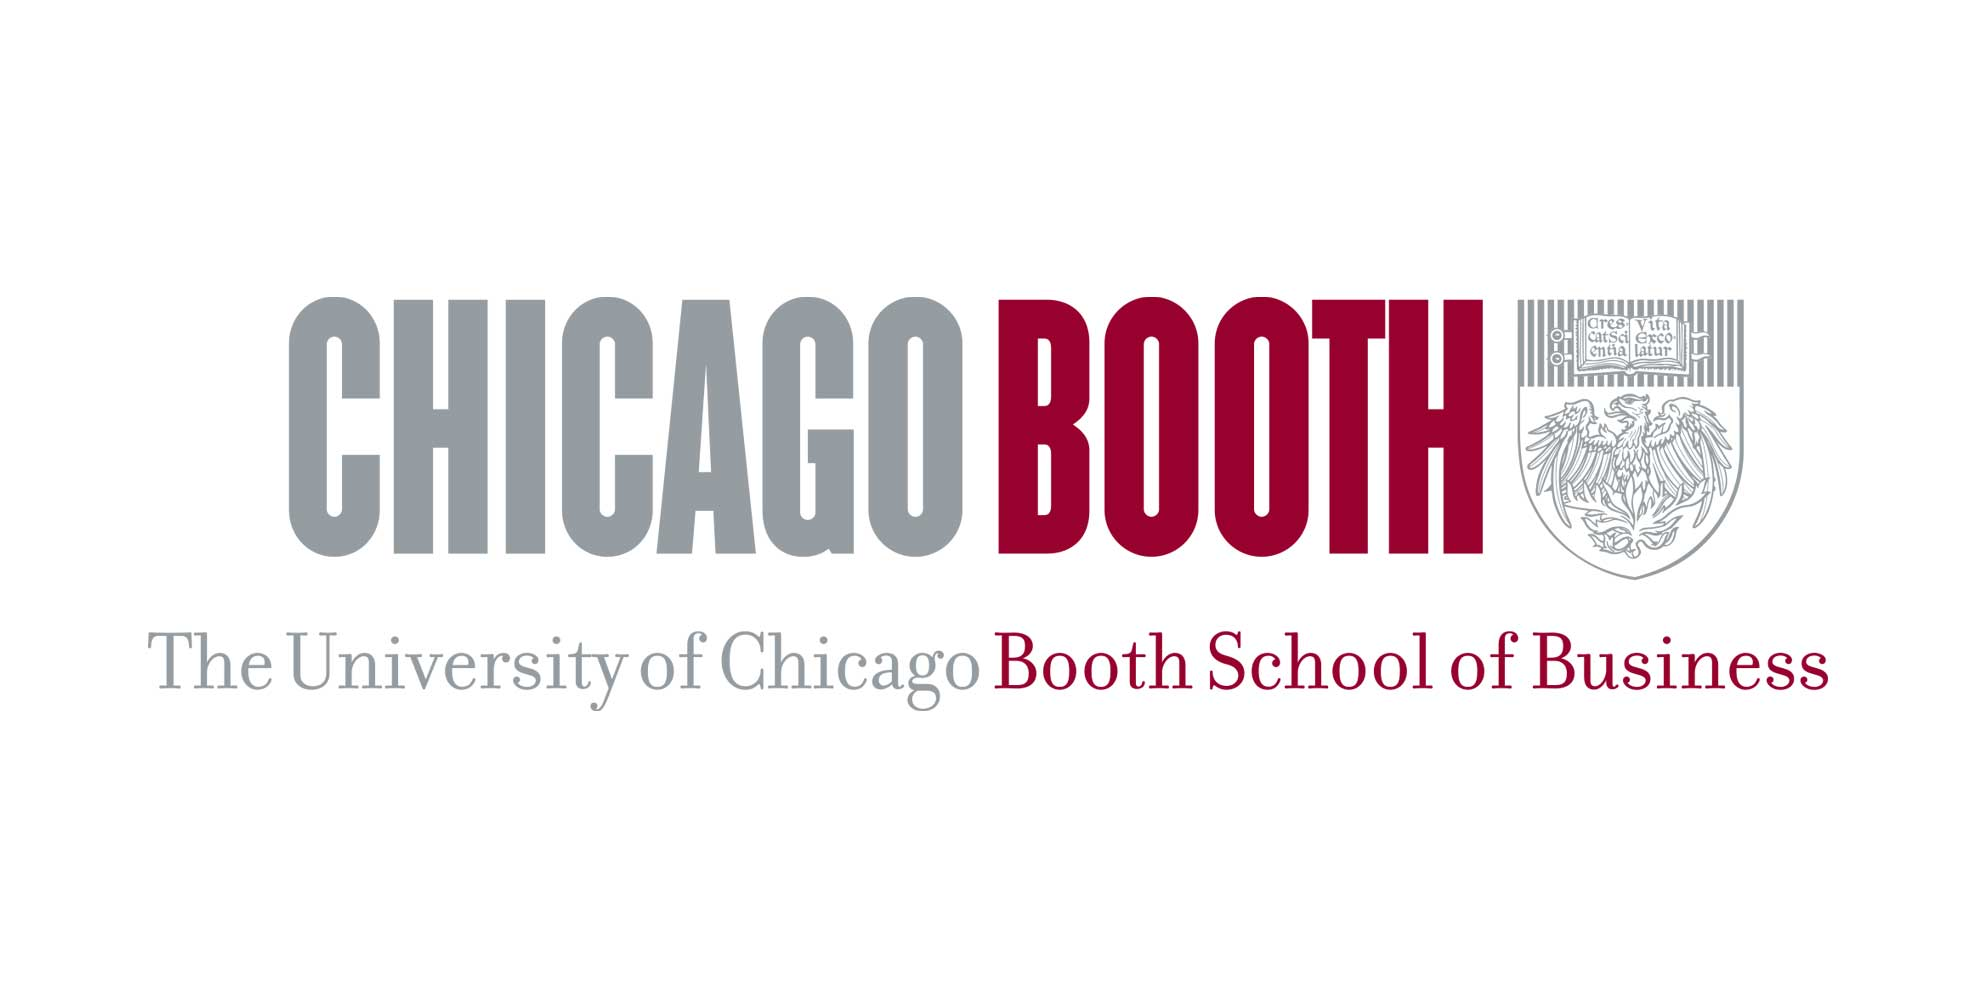 chicago booth mba essay analysis 芝加哥大學布斯商學院  chicago booth mba essay analysis 2016 17 芝加哥大學布斯商學院